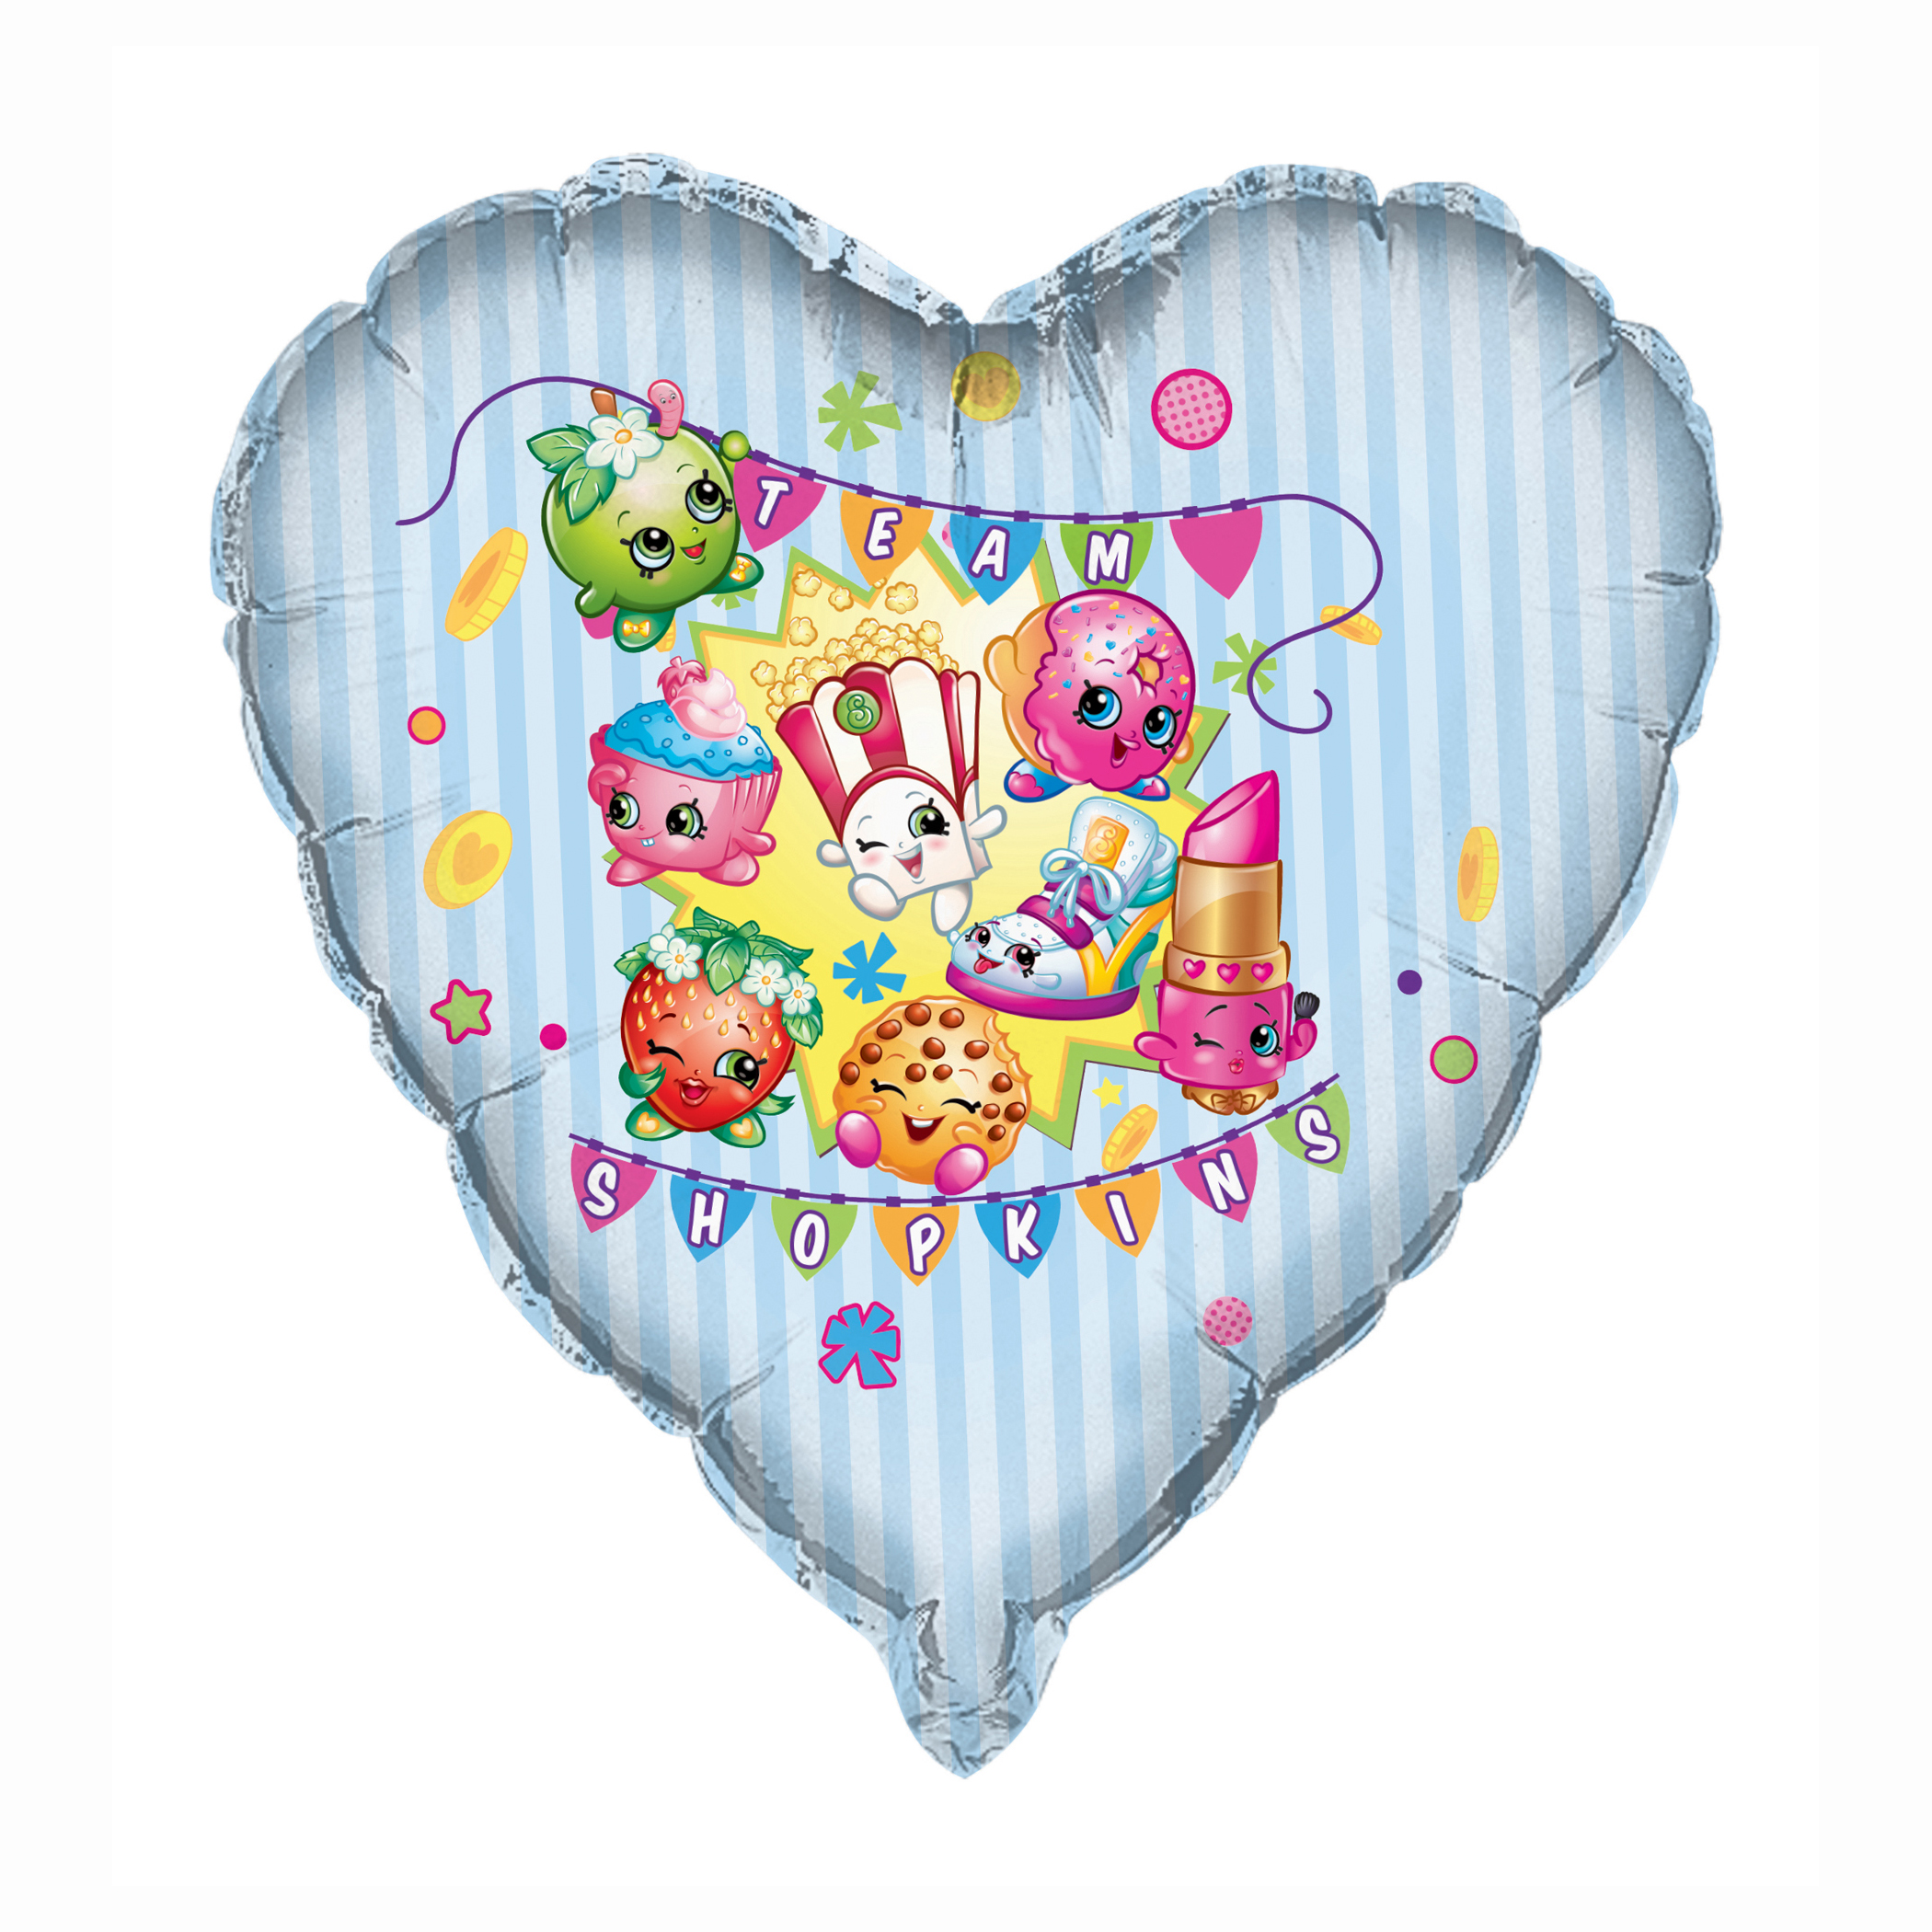 Foil Shopkins Balloon, Heart-Shaped, 28 in, 1ct